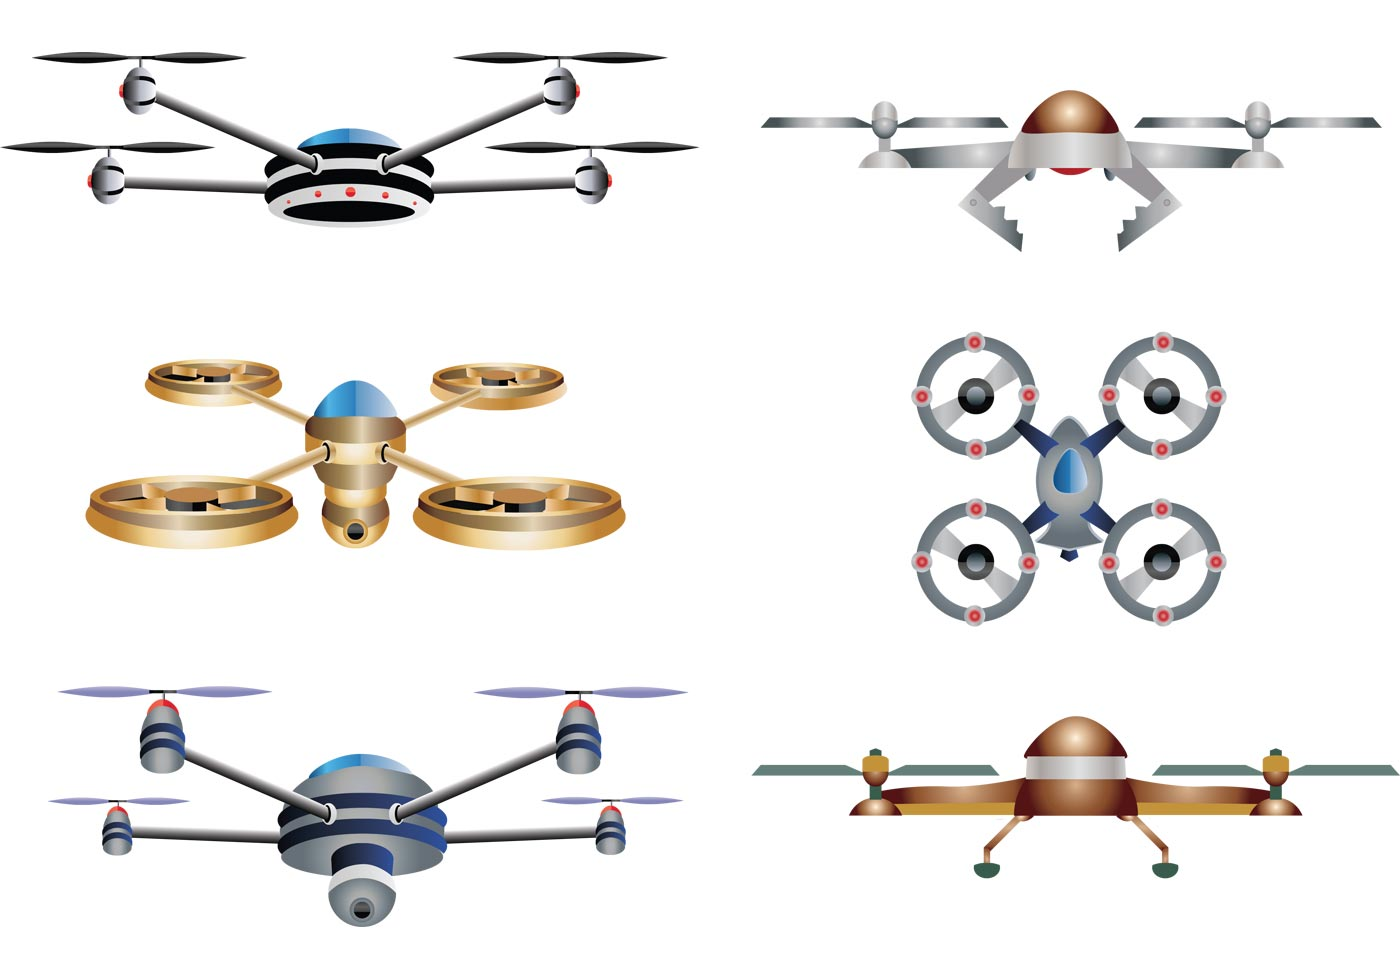 drone multicopter with 83043 Drone Vectors on Custom Motor Output Mix Quadcopter likewise 22438 Hover Drone Hoverboard besides Stock Photo Drone Carrying Hamburger Fast Food Delivery Concept Image46631990 moreover Drone Vecteur Ic C3 B4ne Appareil Photo 1750345 further Watch.